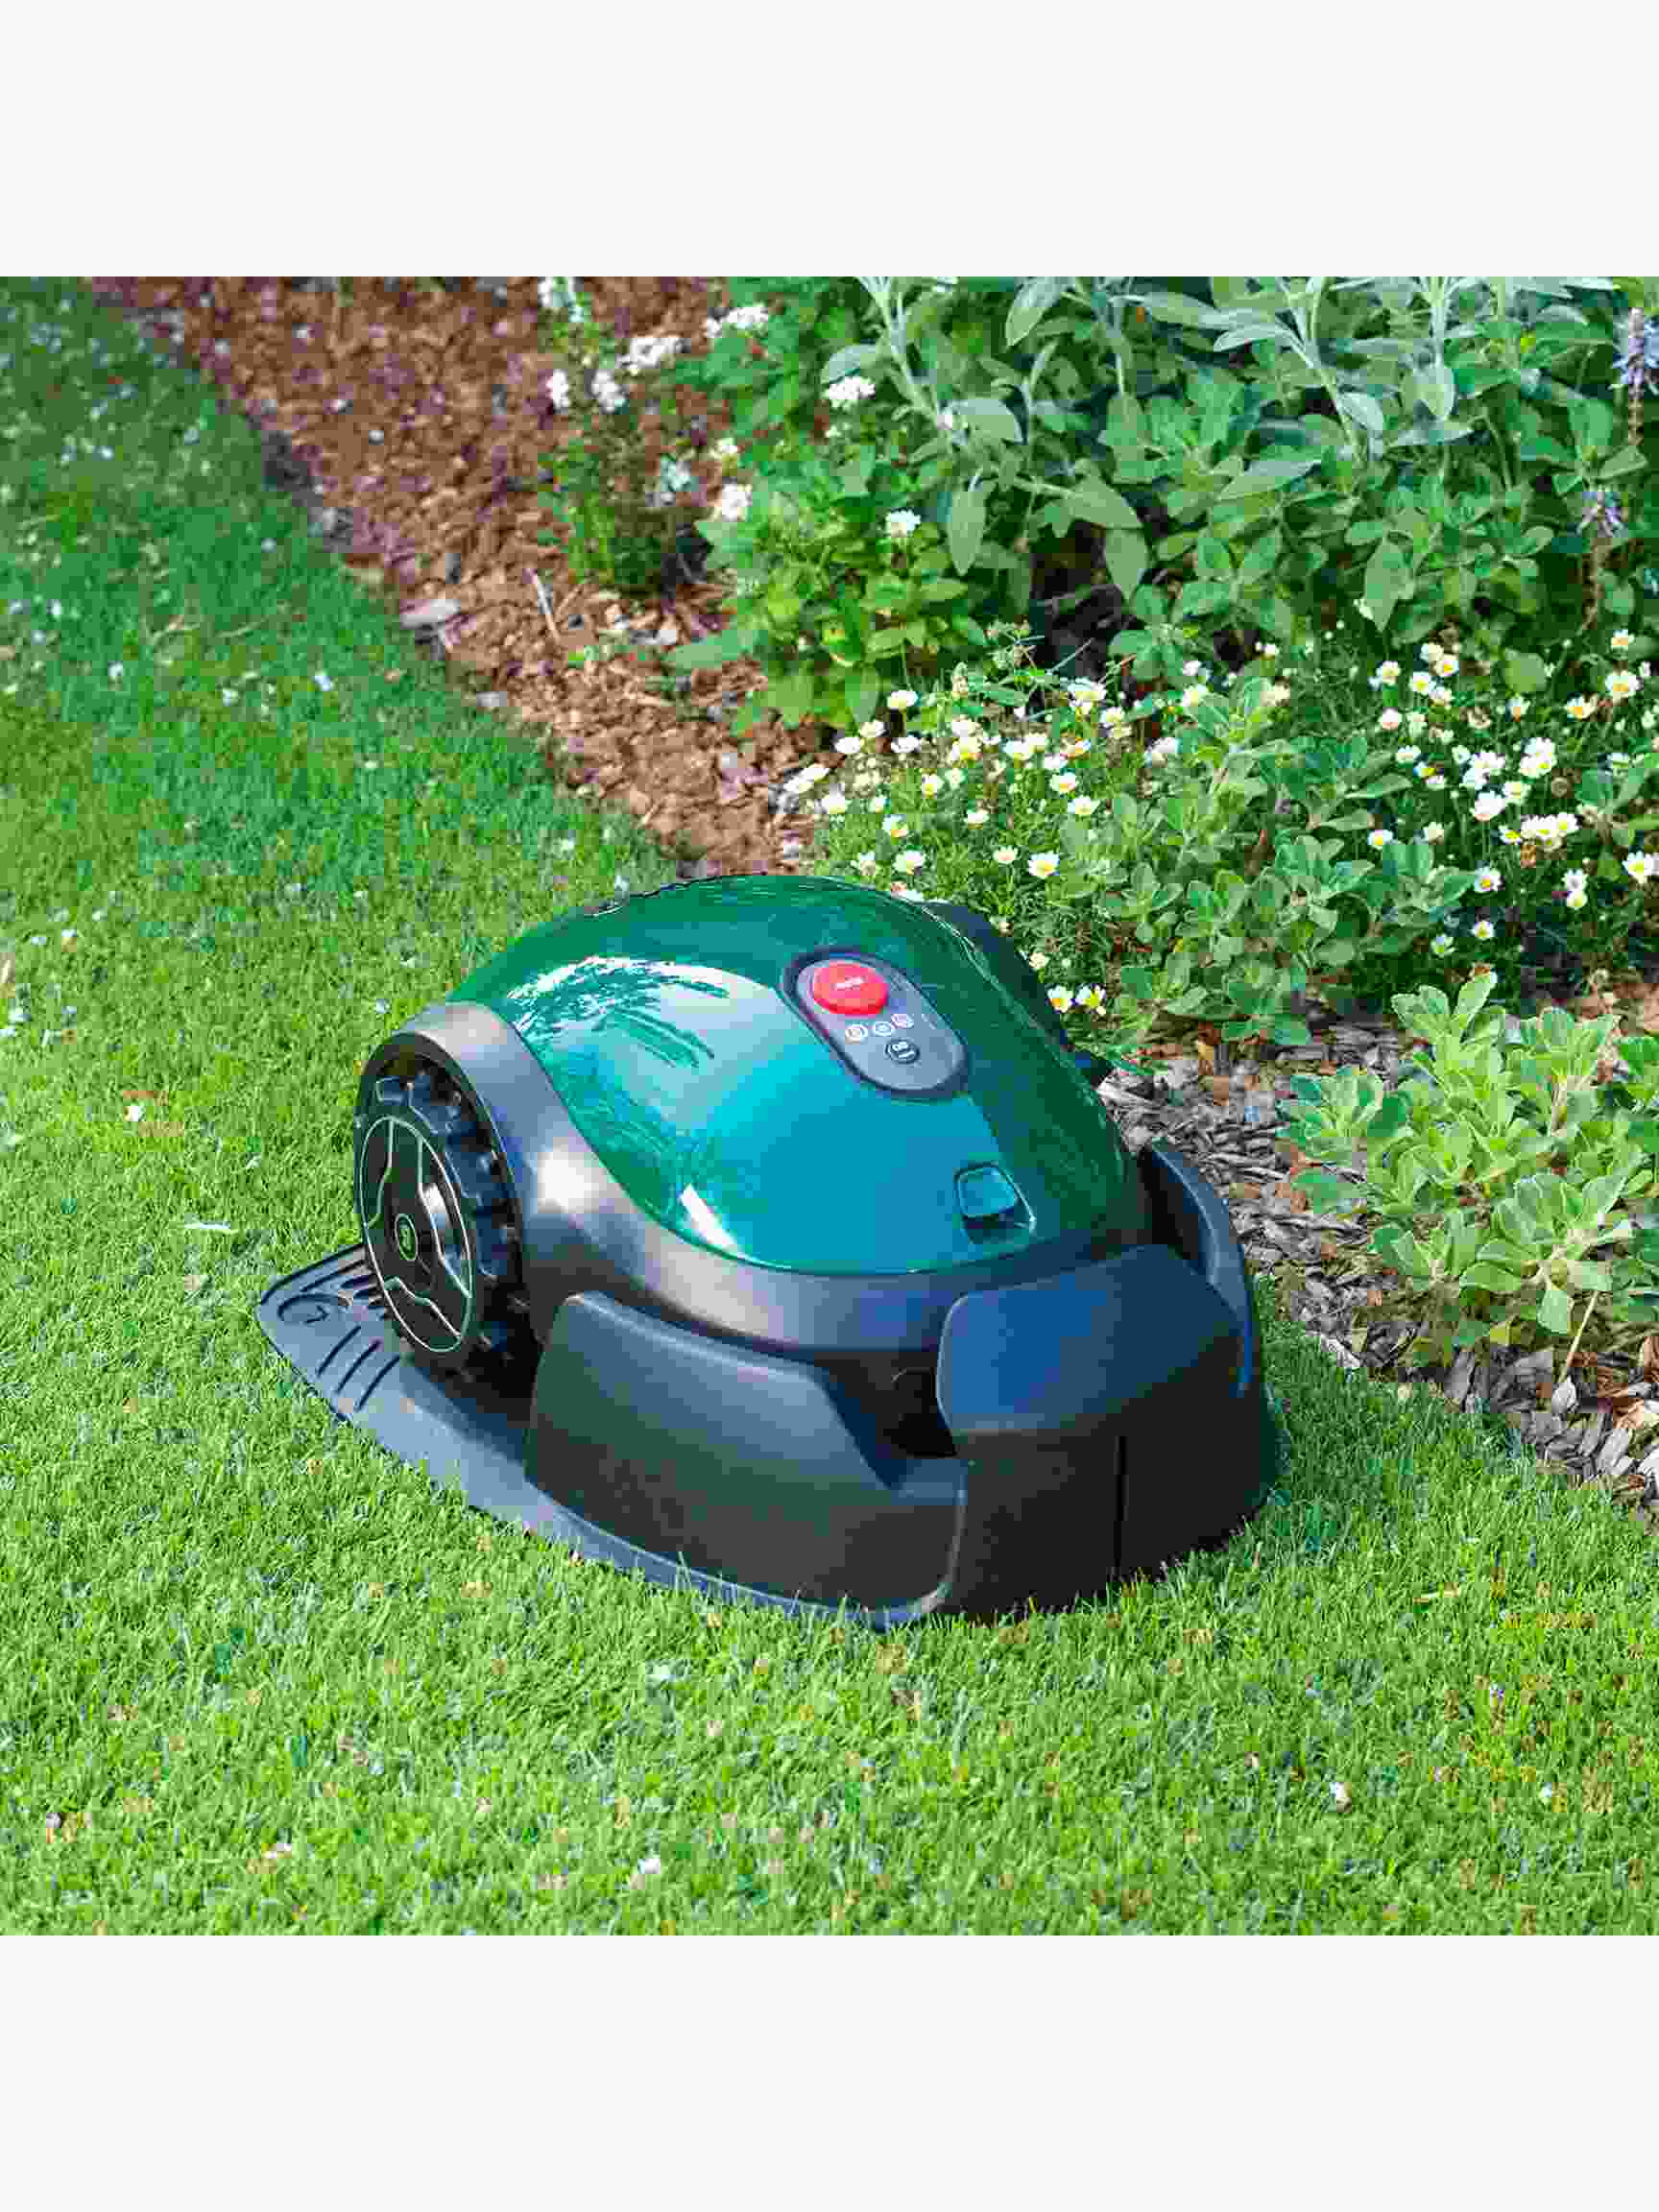 robot lawn mower for sale